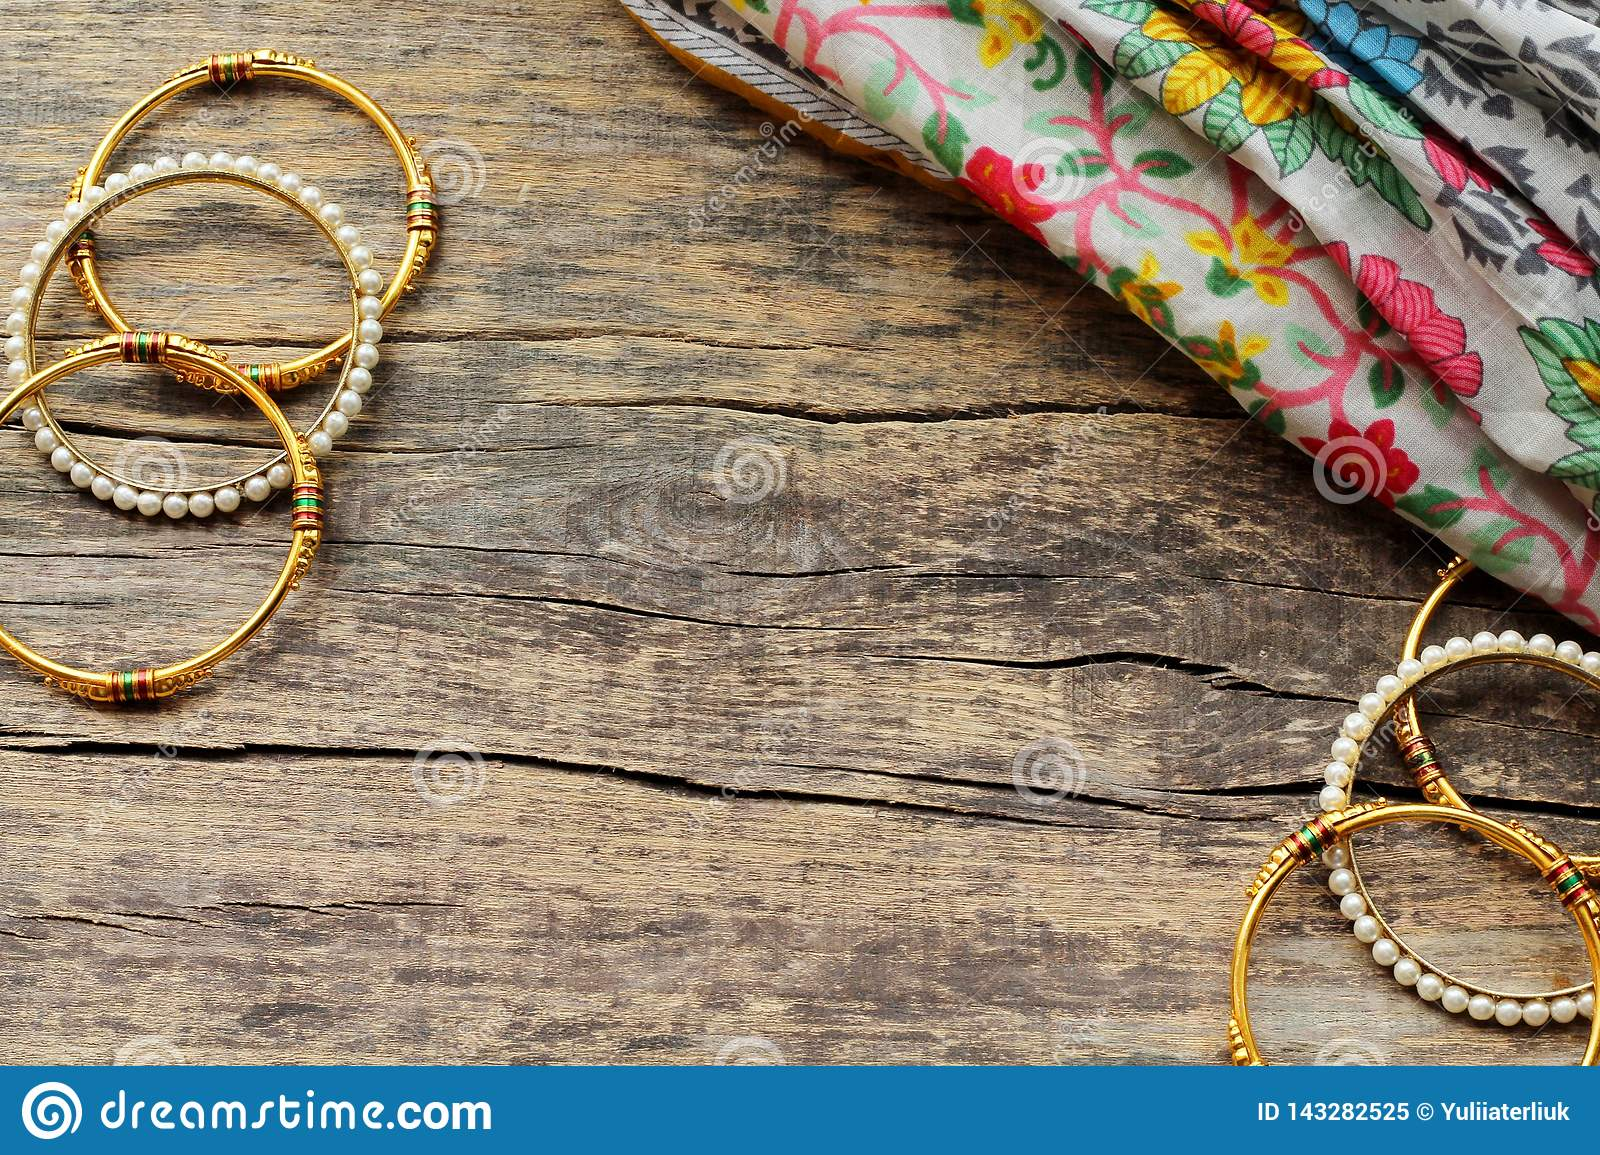 Indian jewelry bracelets and floral ethnic fabric lie on a wooden background